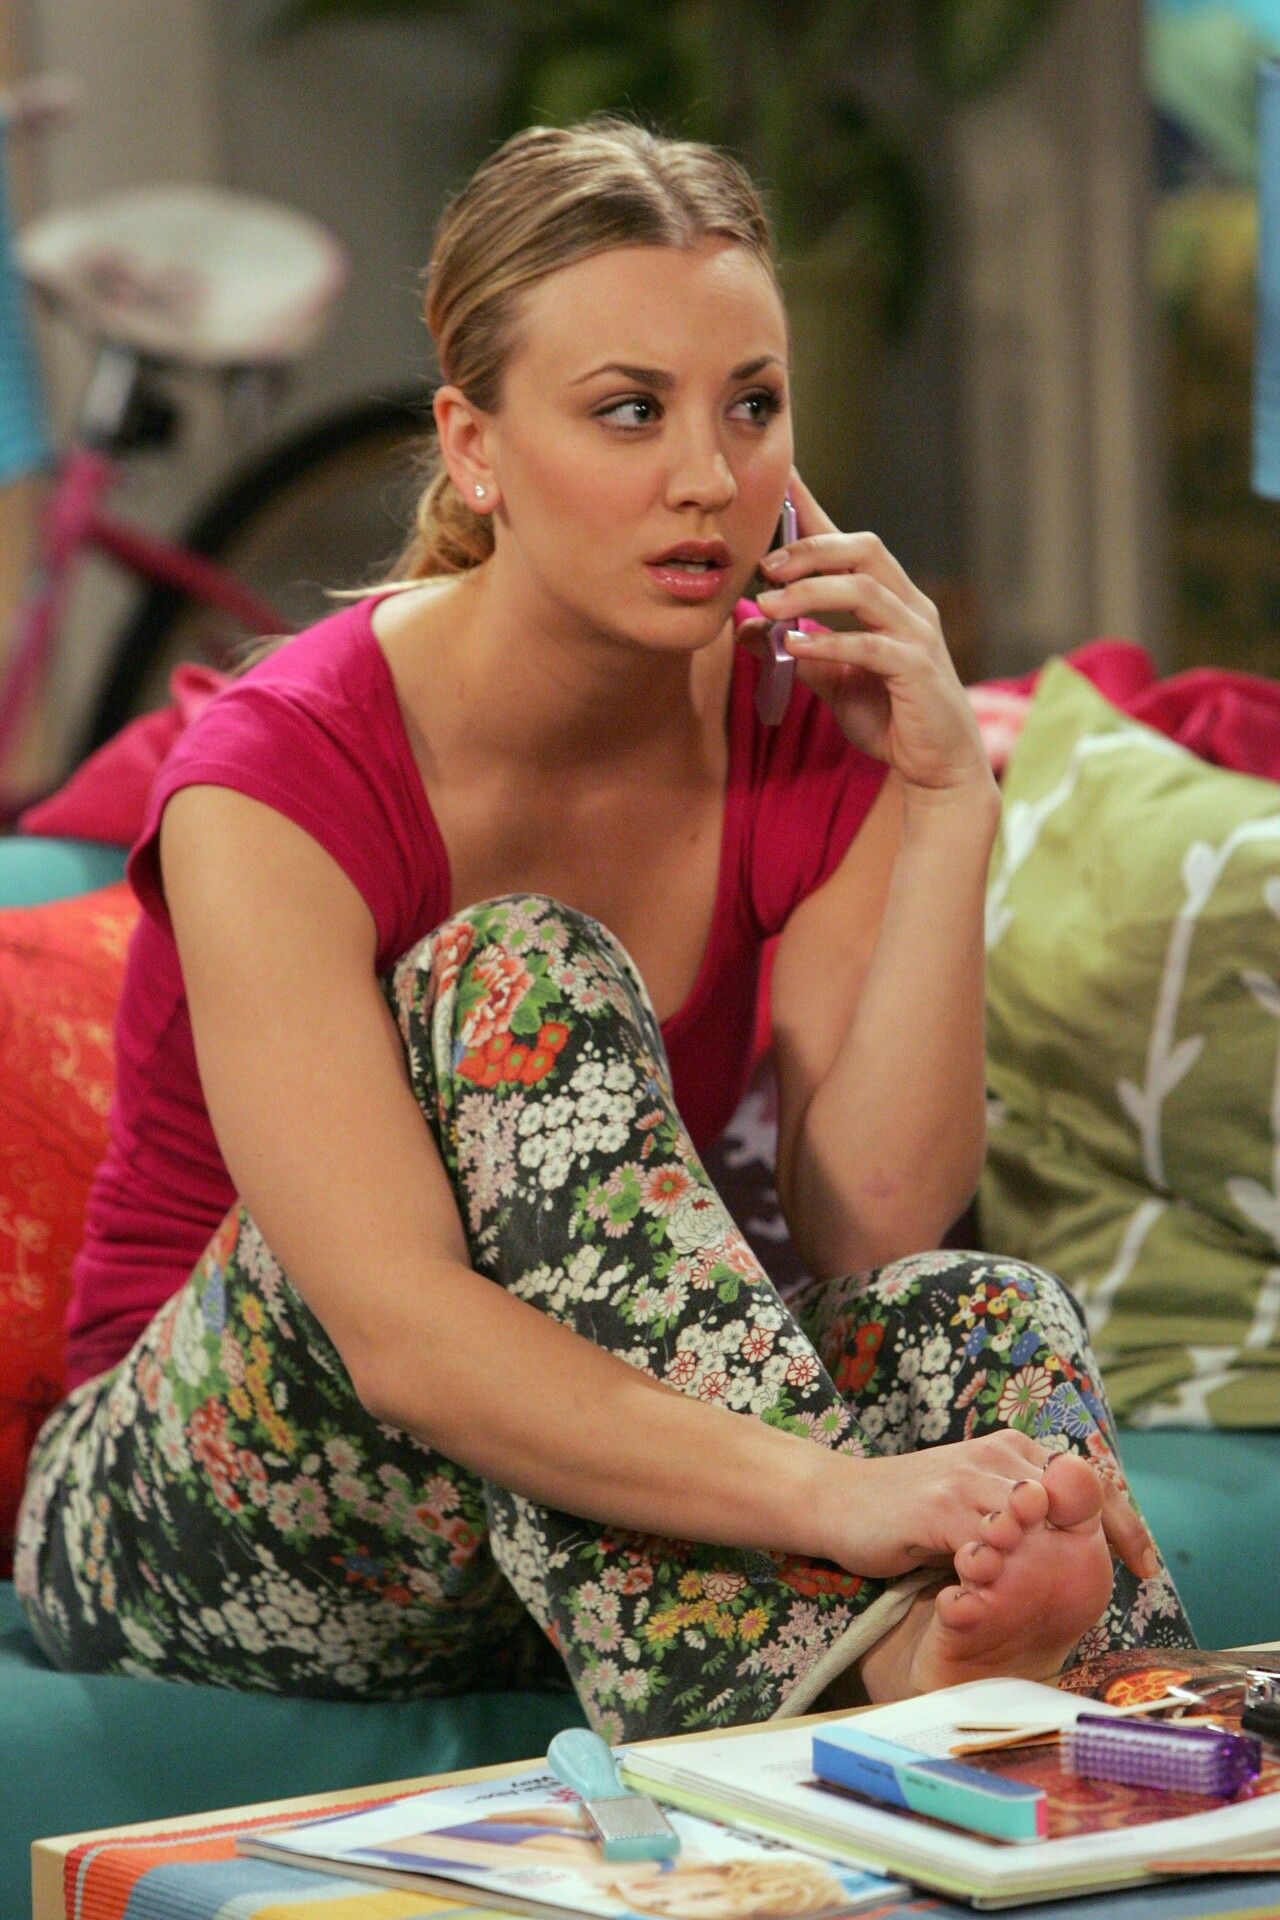 chris and sara dating